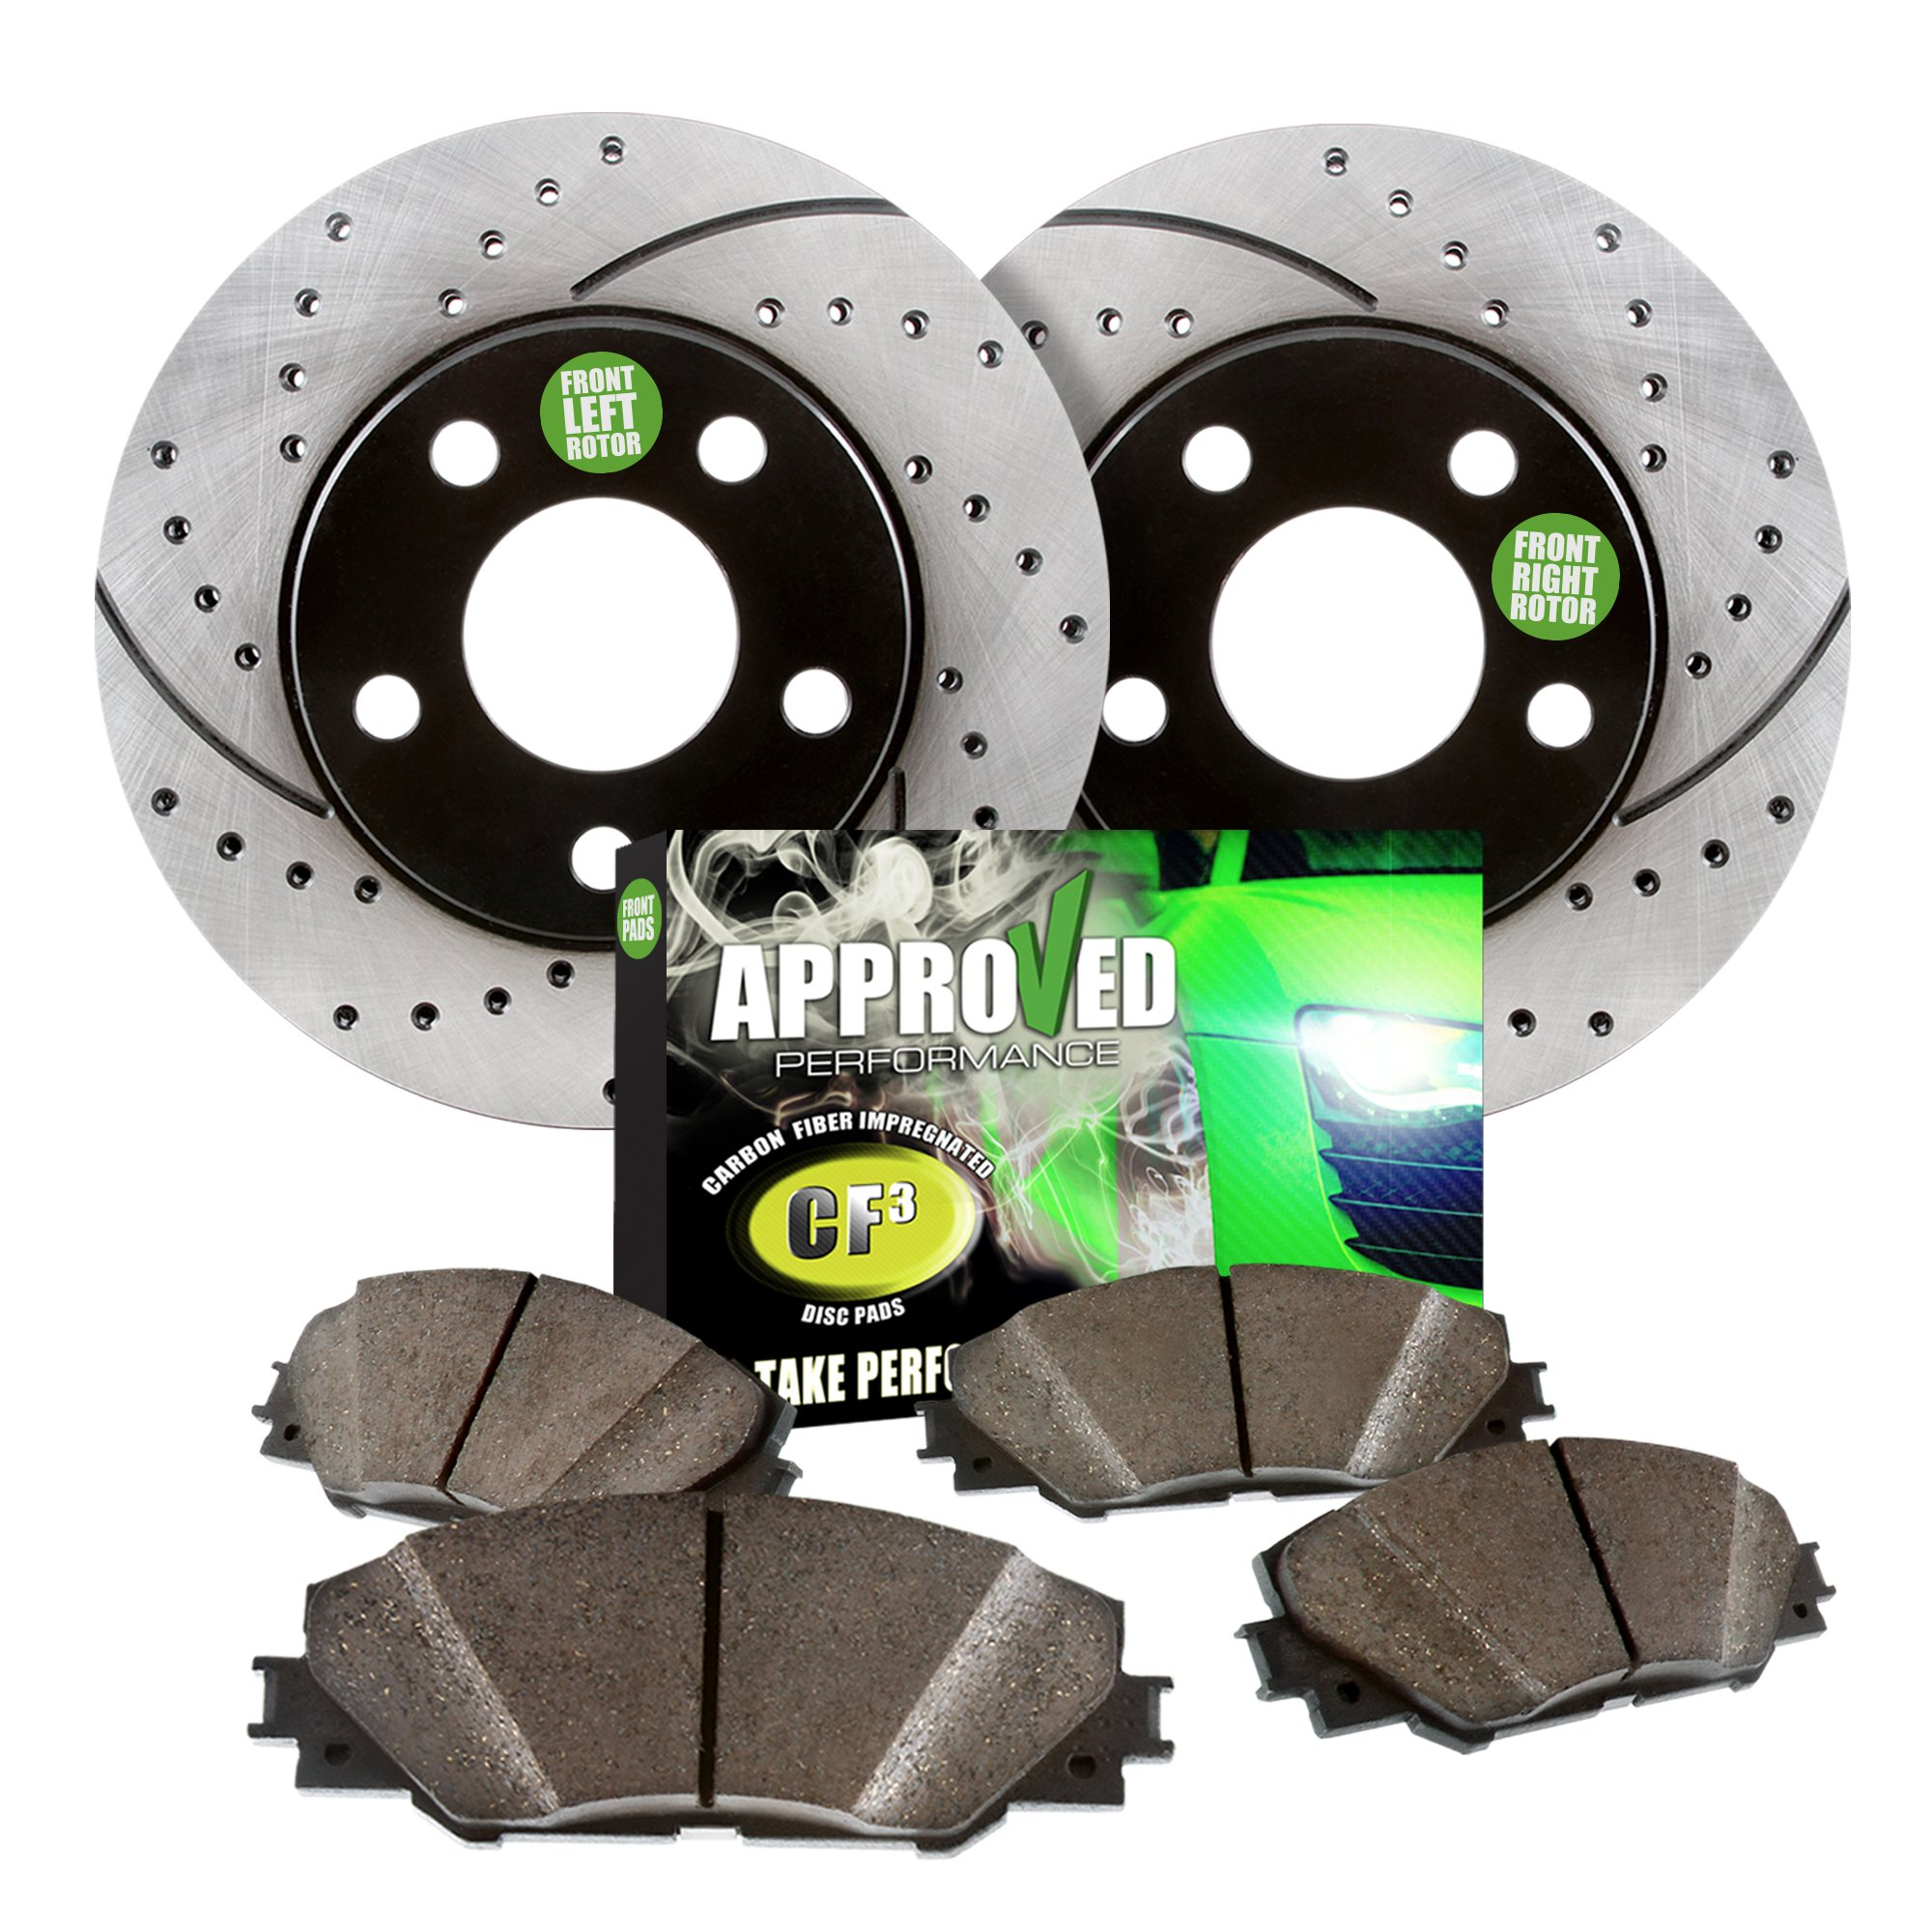 (4WD Models Only) Approved Performance F14322 - [Front Kit] Performance Drilled/Slotted Brake Rotors and Carbon Fiber Pads fits 00 01 02 03 04 F250/F350